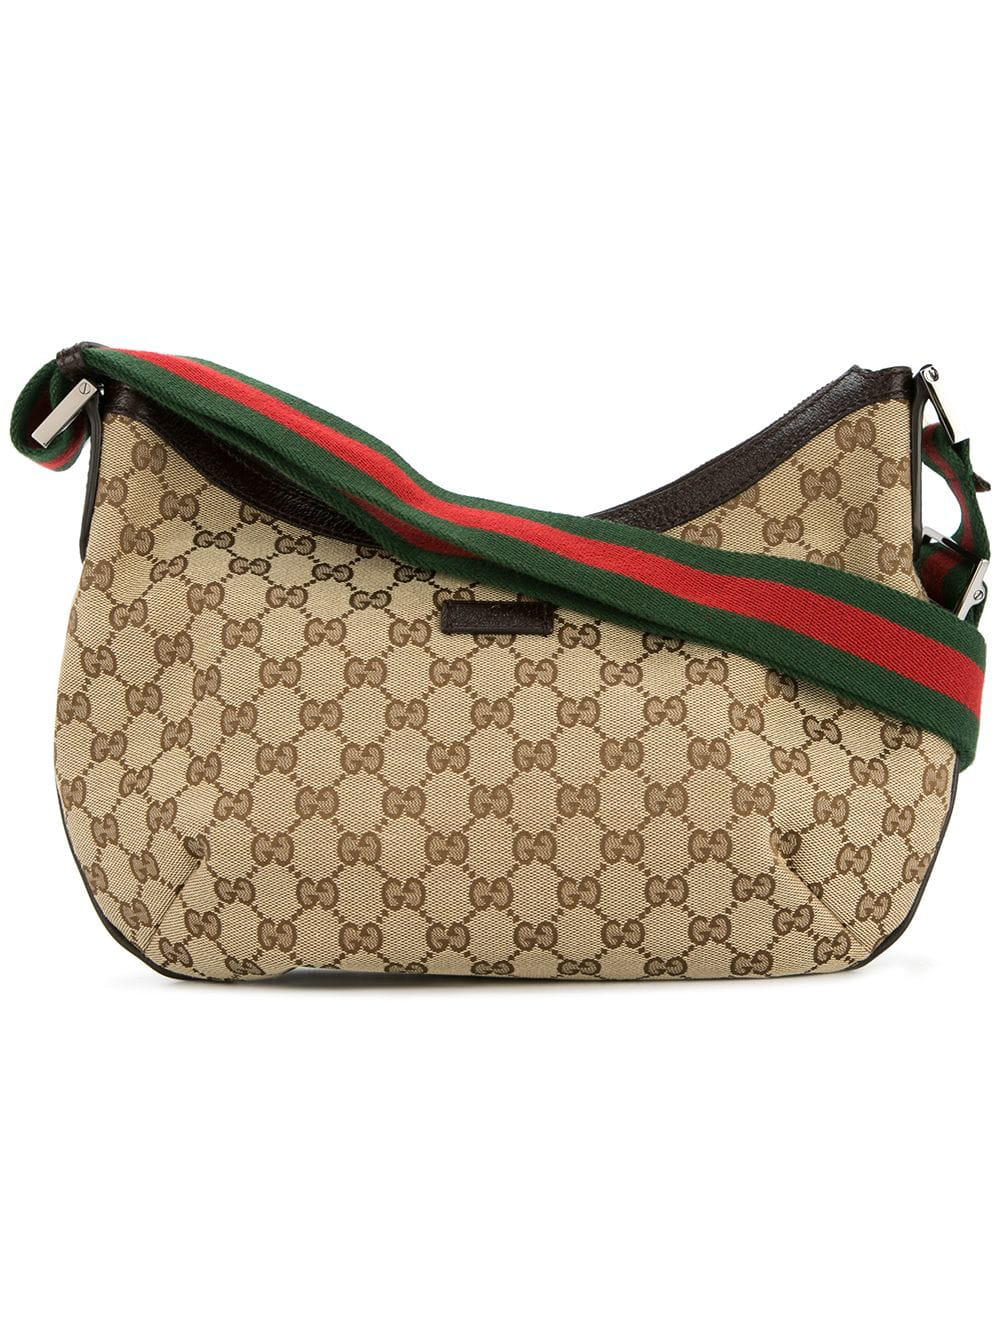 605a69bcc24f Gucci Vintage Gg Shelly Line Bag - Brown | ModeSens